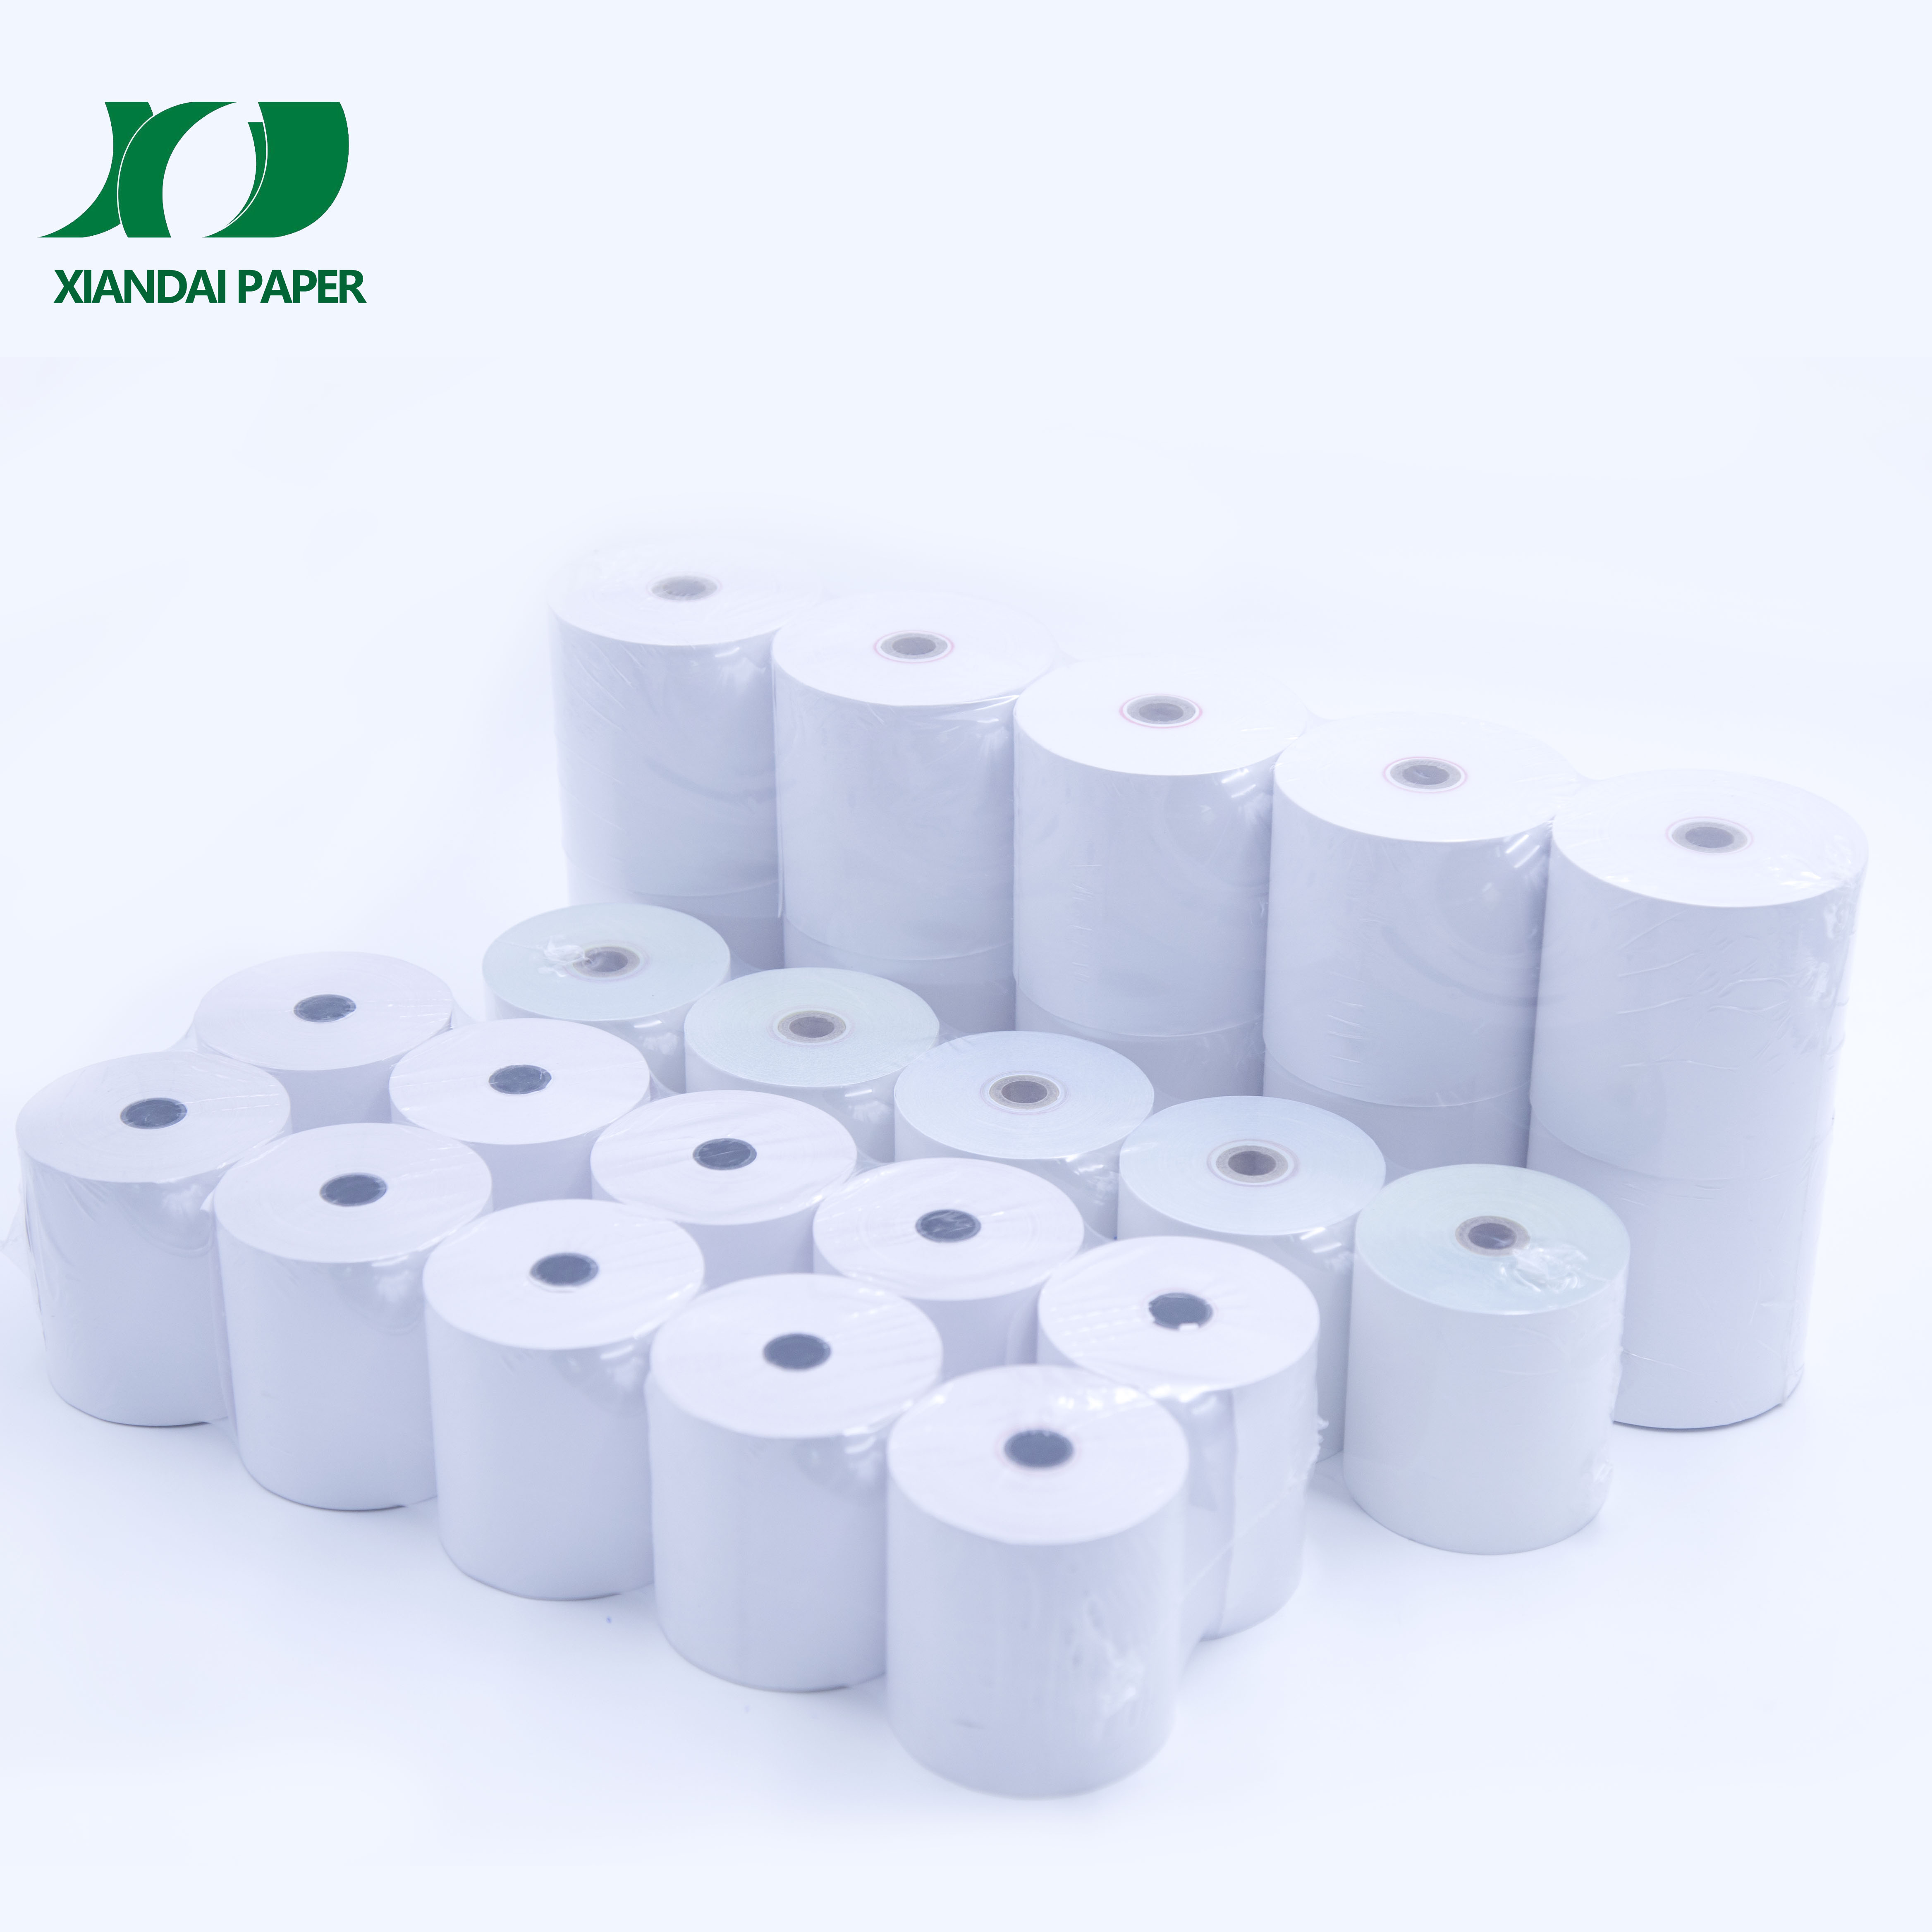 Thermal pos paper Cheap ATM cash regiester POS roll thermal paper jumbo rolls